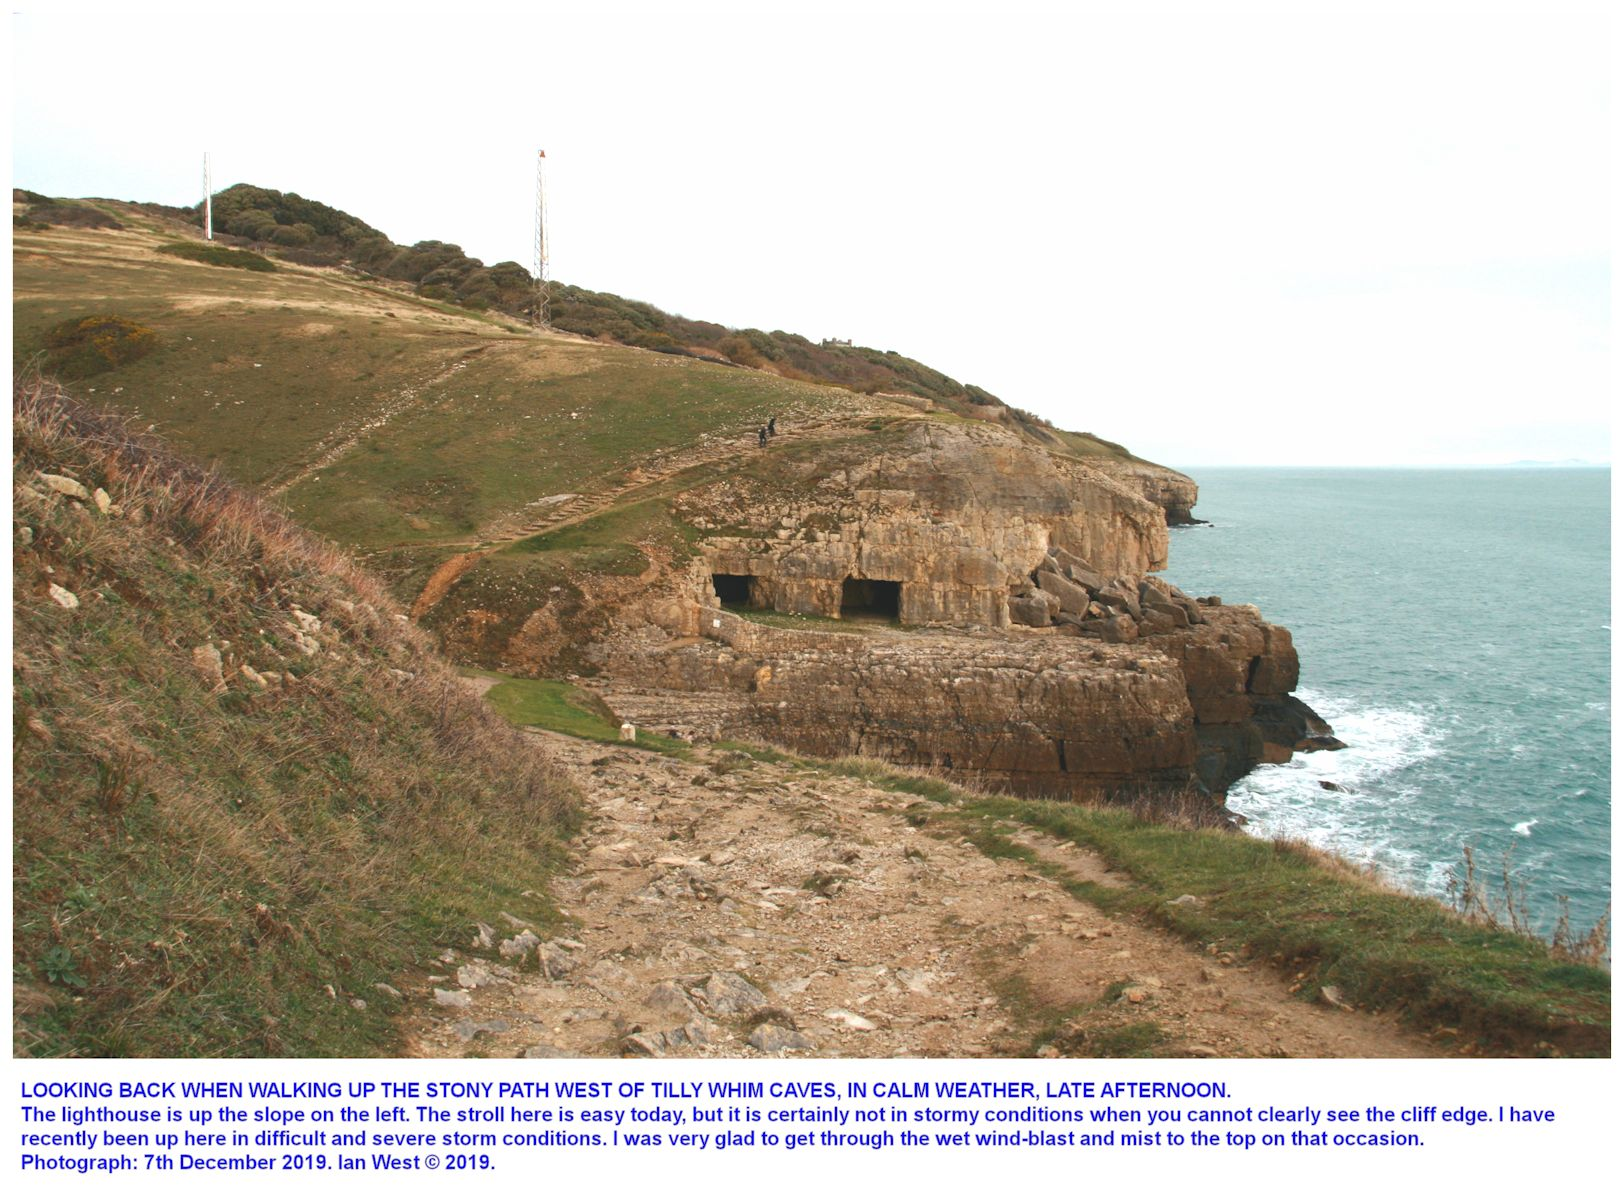 Up the coastal path adjacent to the lighthouse at Anvil Point, looking back eastward towards Tilly Whim Caves, Swanage, Dorset, in good weather conditions, photograph by Ian West, late afternoon, 7th December 2019